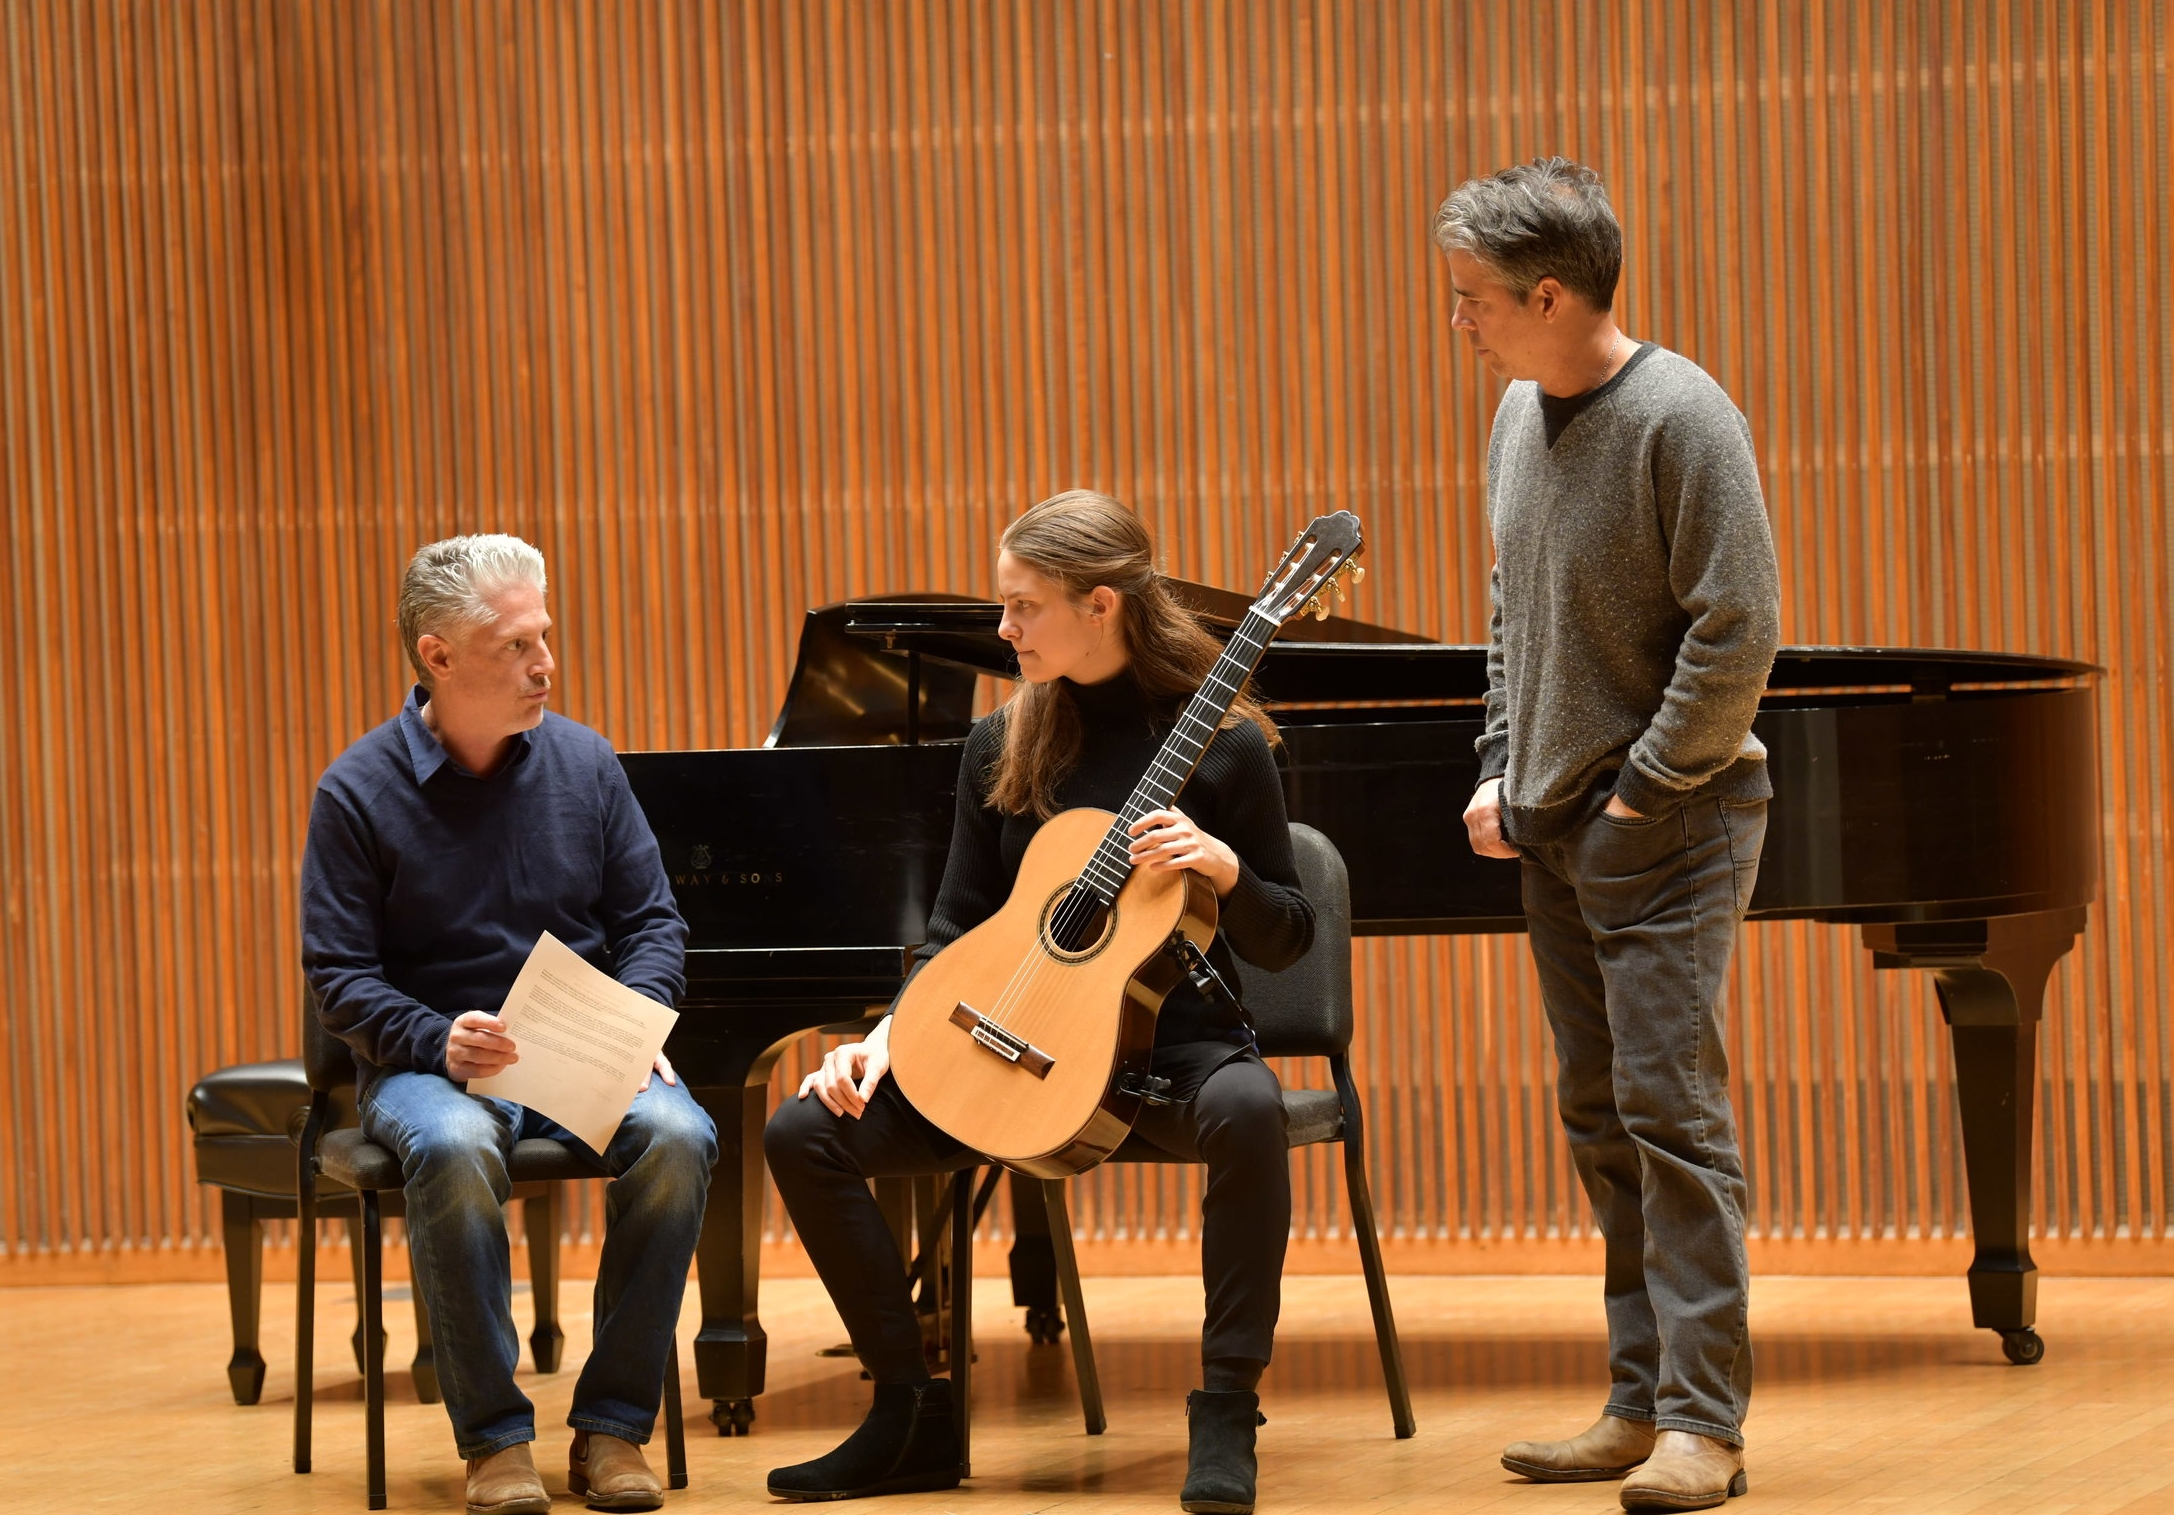 Eliza Balmuth played the first movement from Federico Moreno-Torroba's Sonatina in A